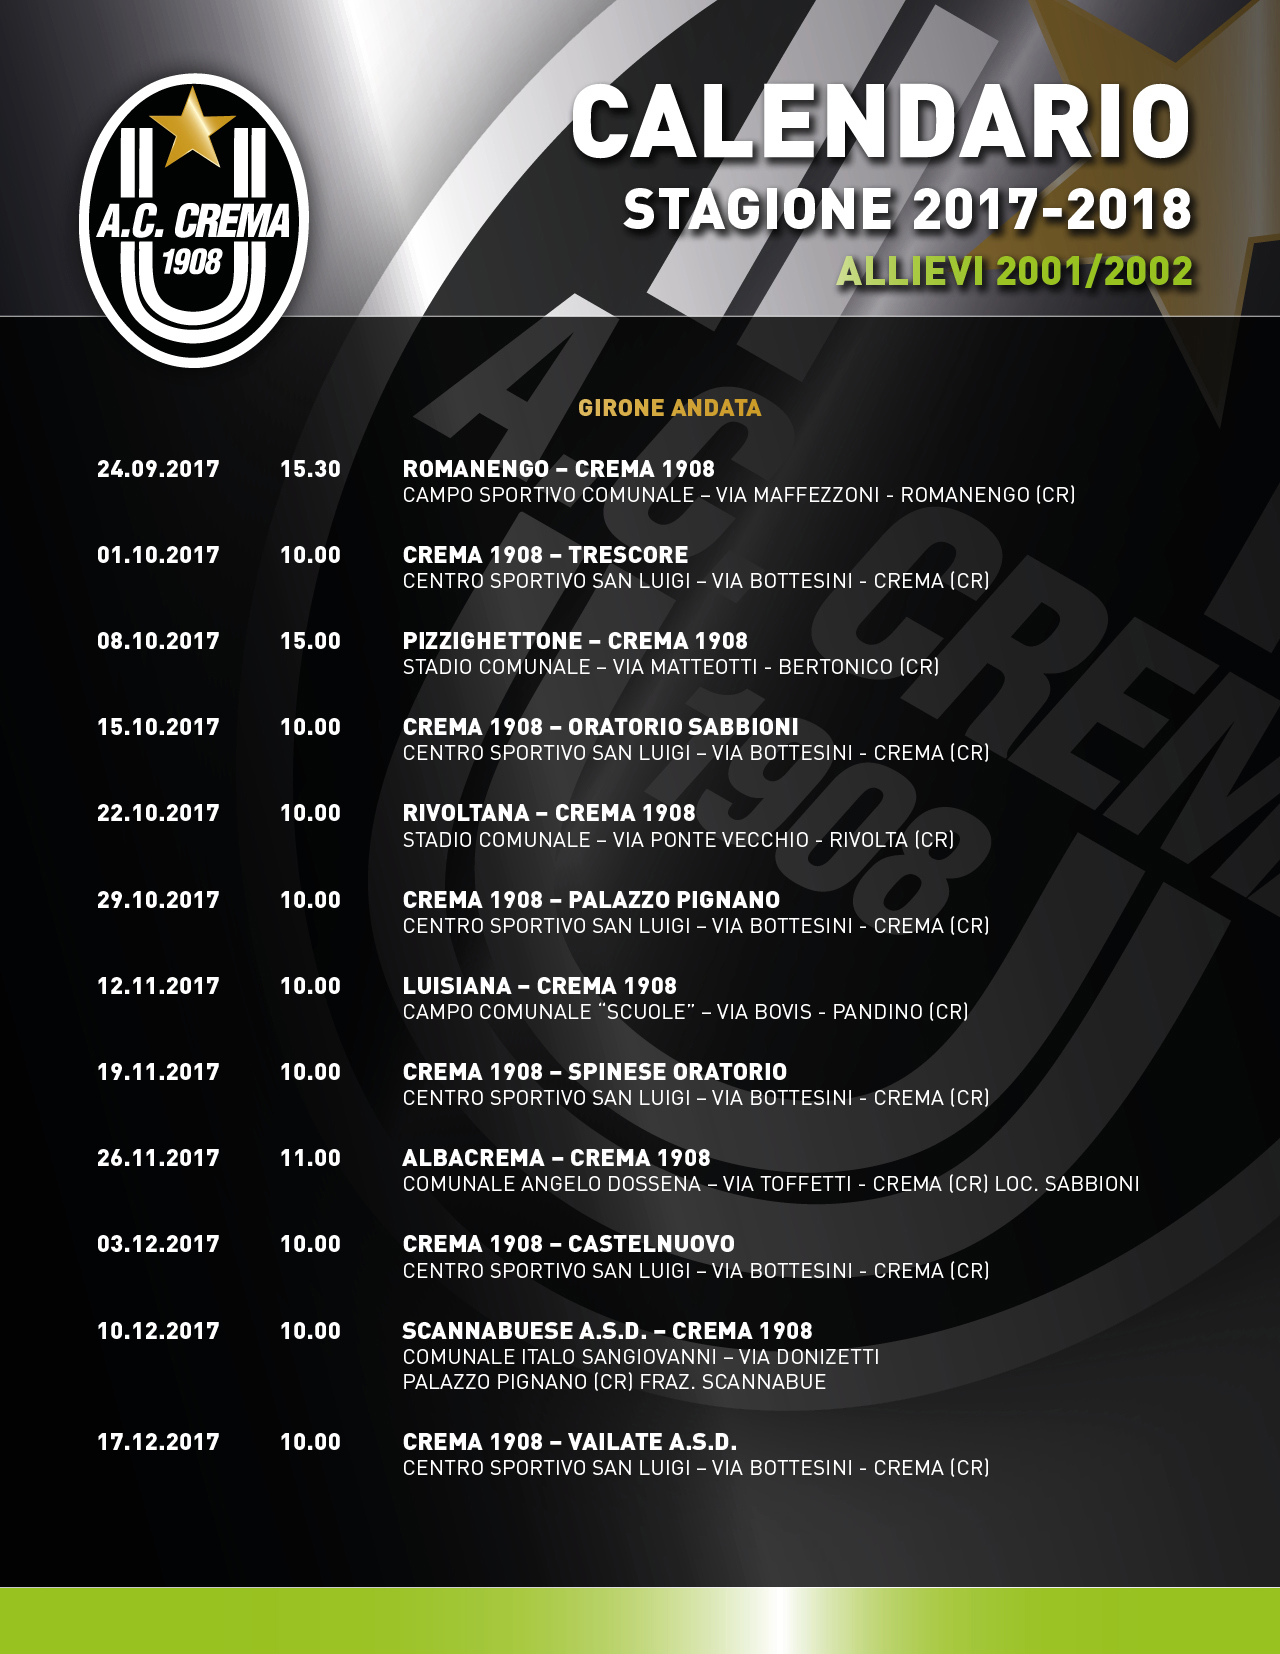 Calendario allievi